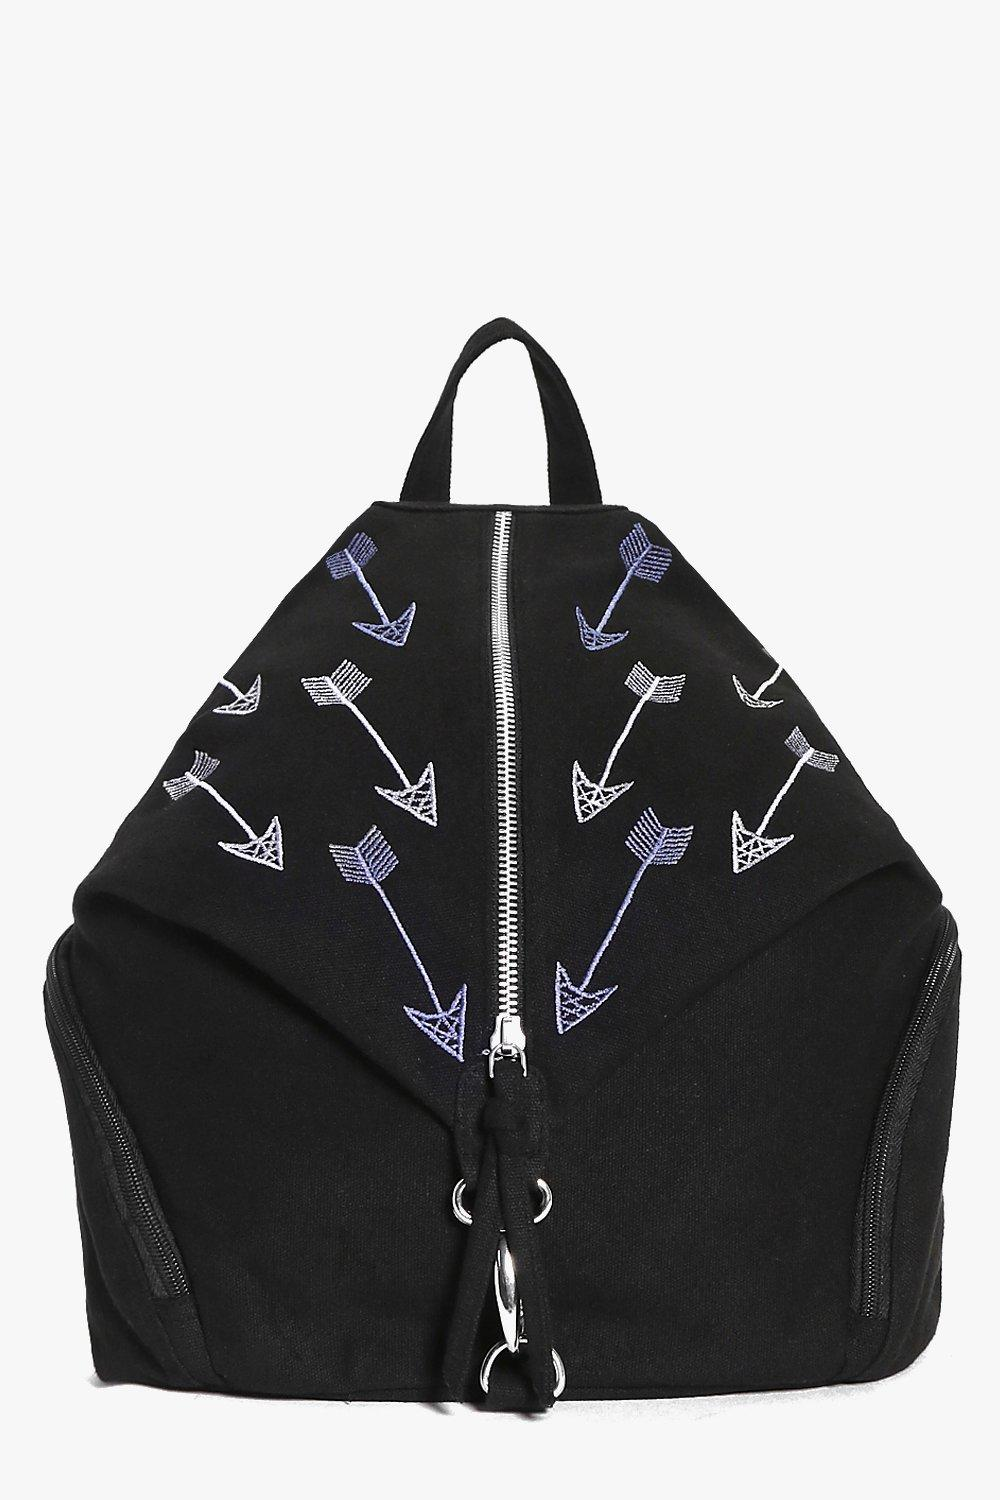 Arrow Embroidered Triangle Backpack - black - Anni